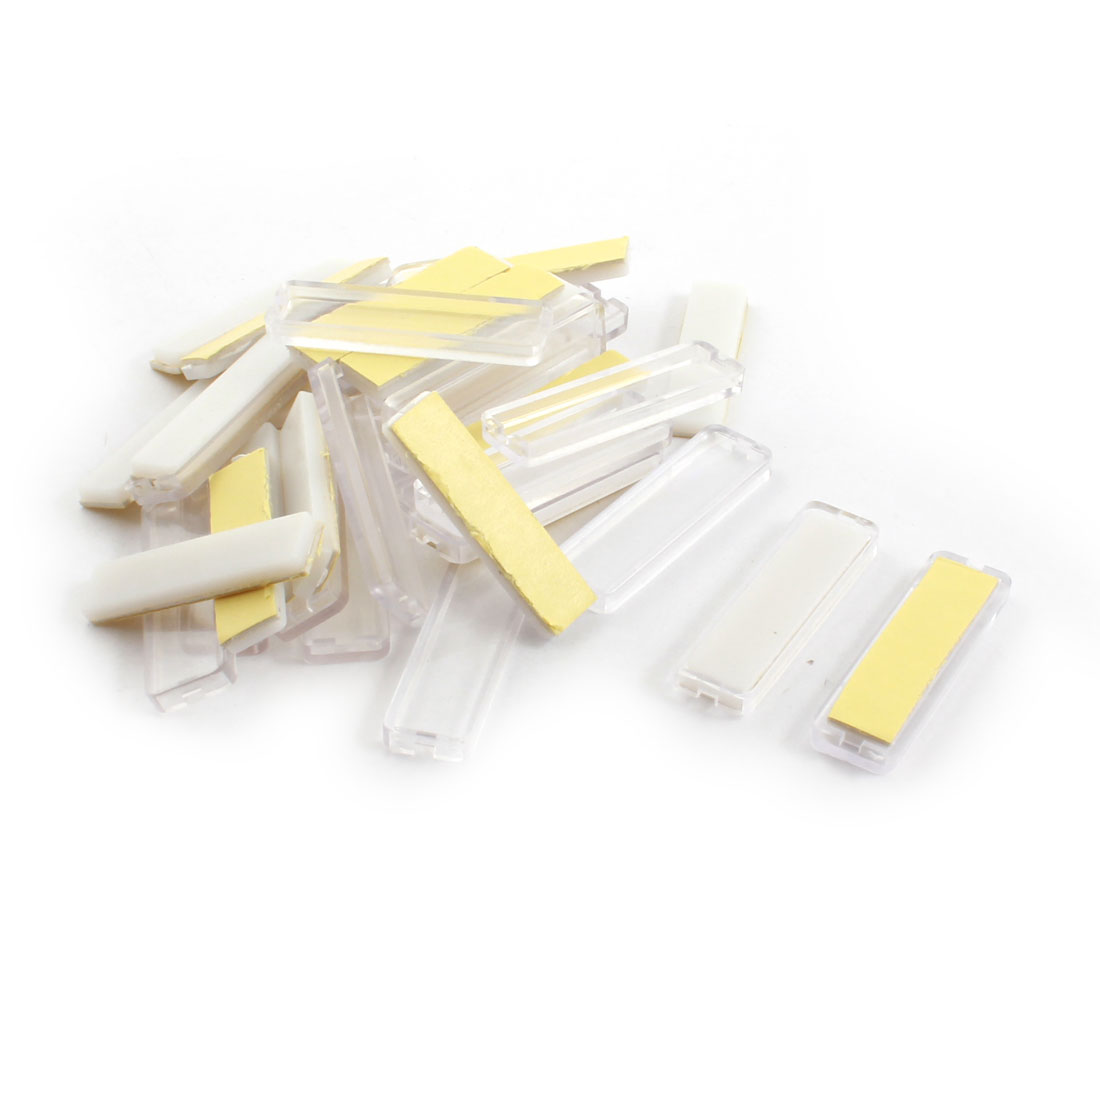 20Pcs 13x45mm Rectangle Clear White Plastic Waterproof Adhesive Power Distributor Case Cable Wire Label Stick